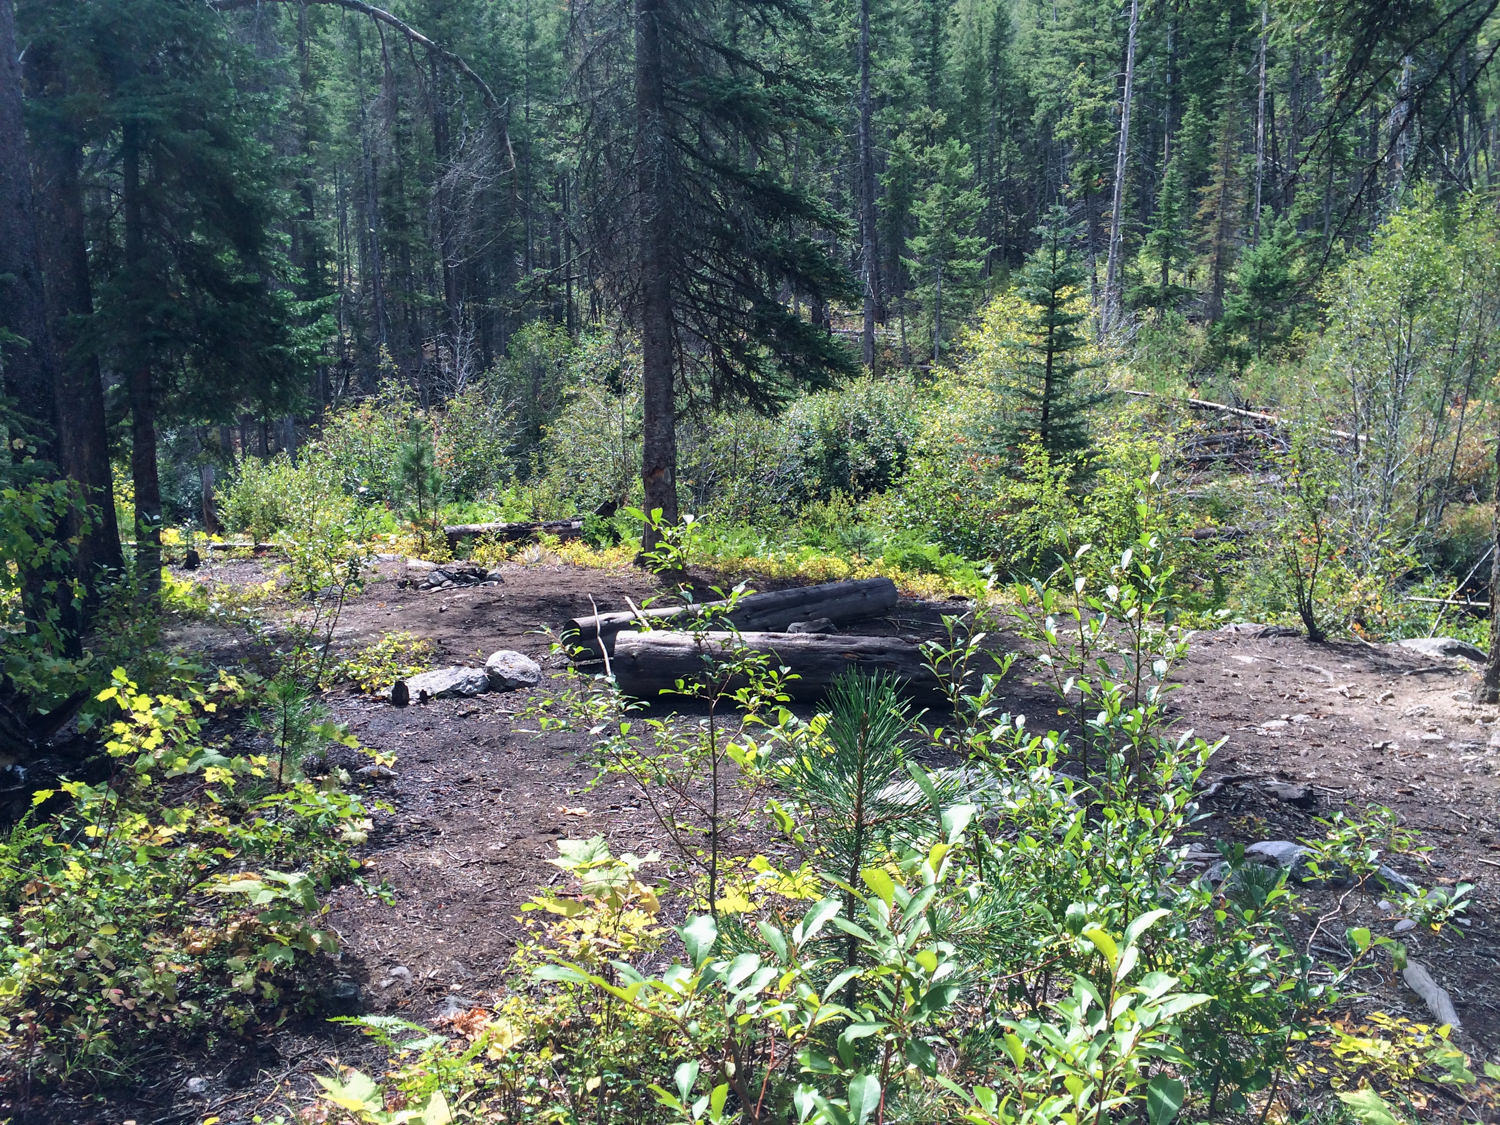 I was hiking in the Selway-Bitterroot up Mill Creek in search of places to camp. This area was particularly noticeable considering how large the impacted area was. If you're in a high-use area, consider using already impacted areas like this, so you don't cause anymore damage to surrounding areas.